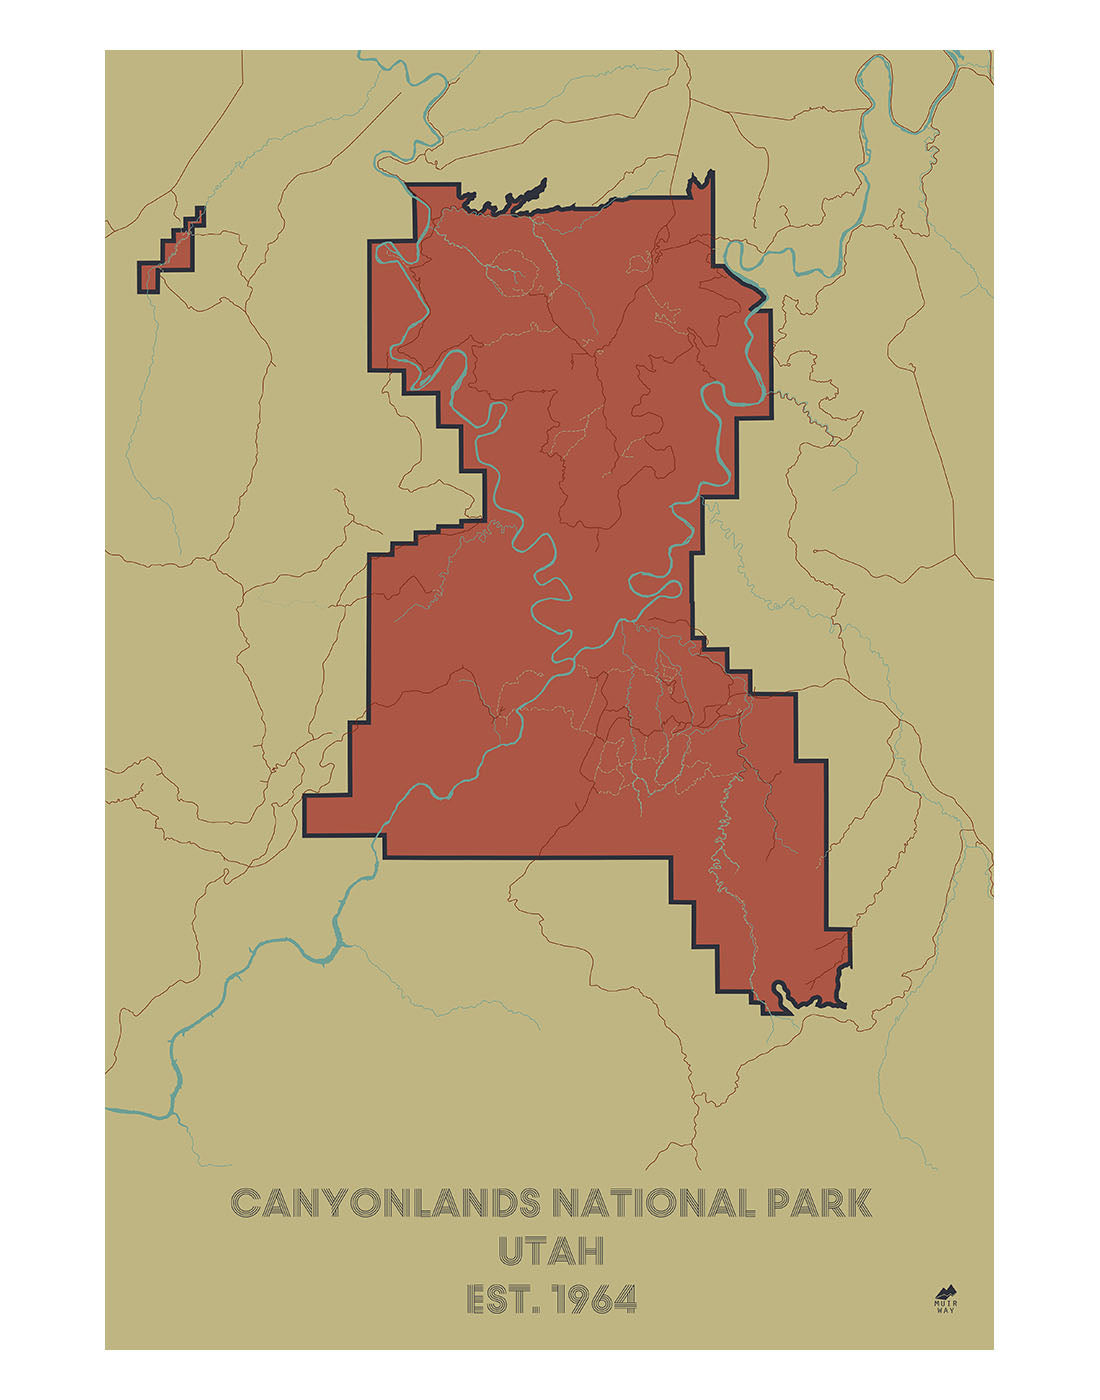 Canyonlands National Park Map on valley of the gods map, gates of the arctic map, capitol reef map, sunset map, cisco map, mesa verde map, big thicket map, manti la sal map, monument valley map, greenwich map, horseshoe canyon map, moab map, white rim map, arcadia map, utah map, dixie national forest map, shenandoah map, laketown map, kobuk valley map, mesa arch map,